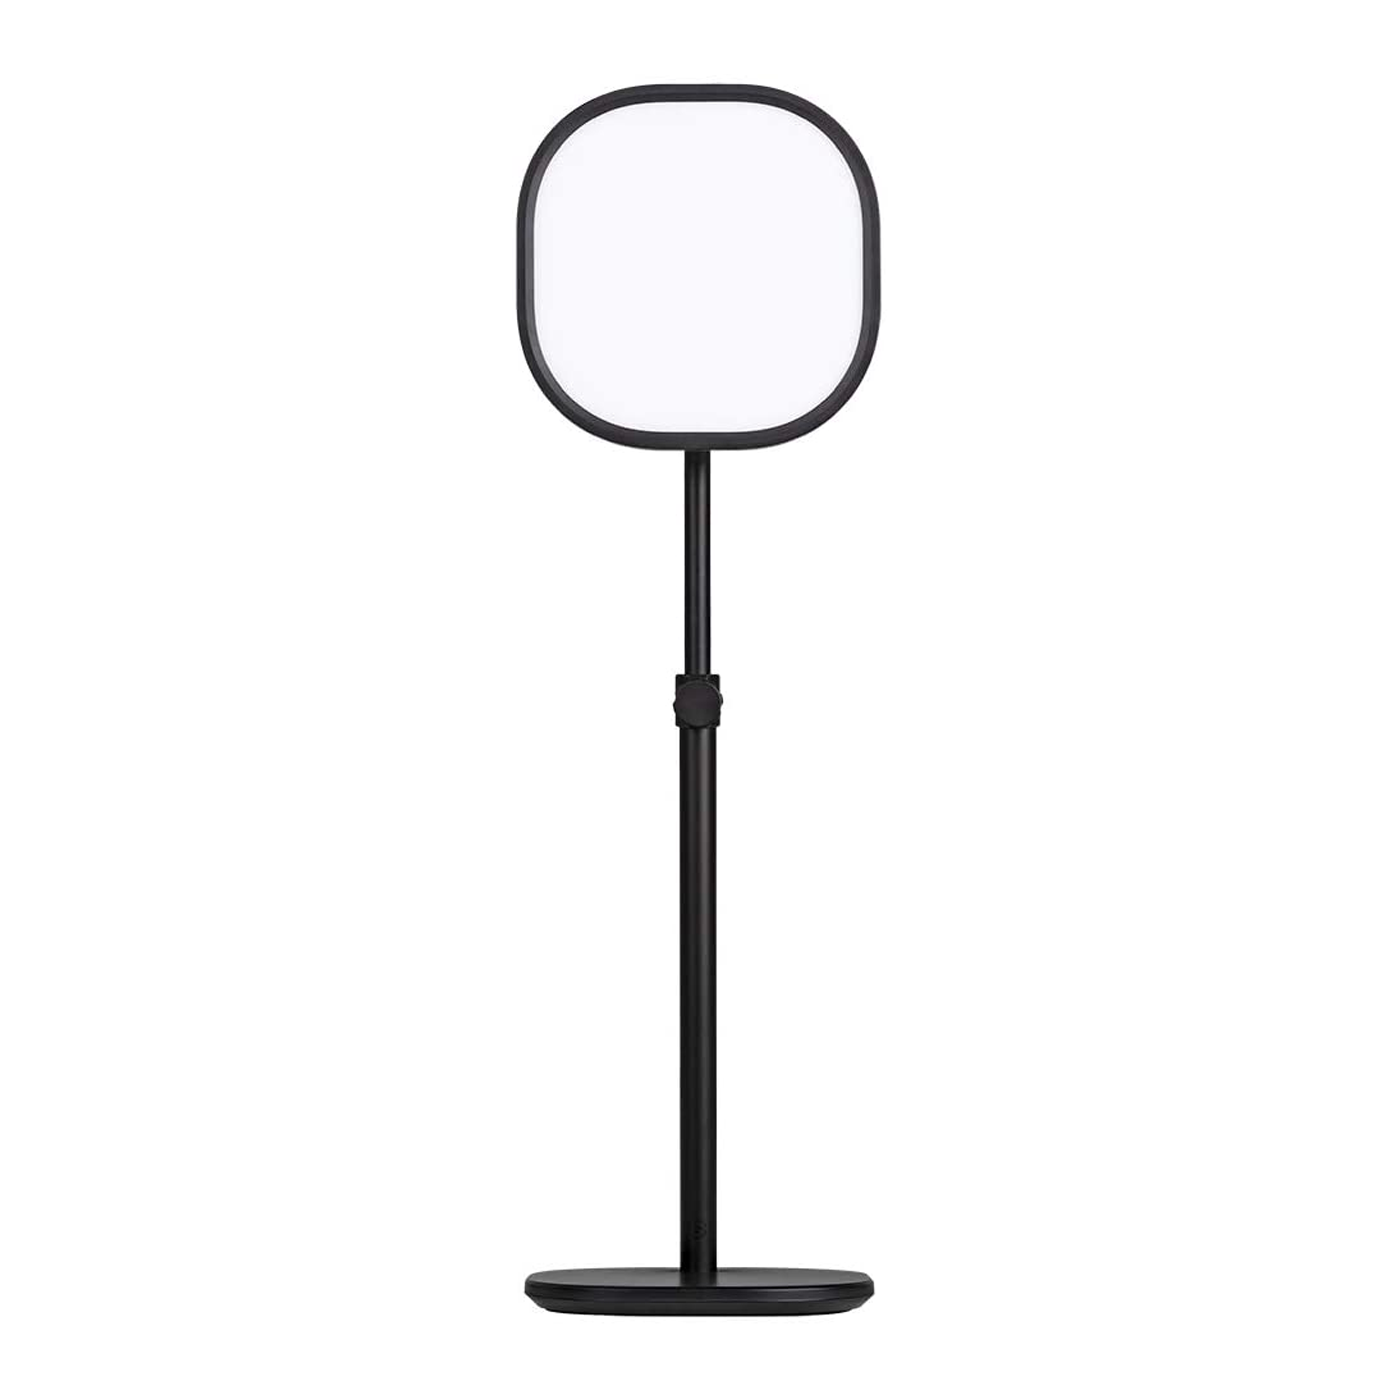 An image of an Elgato Key Light Air on a white background